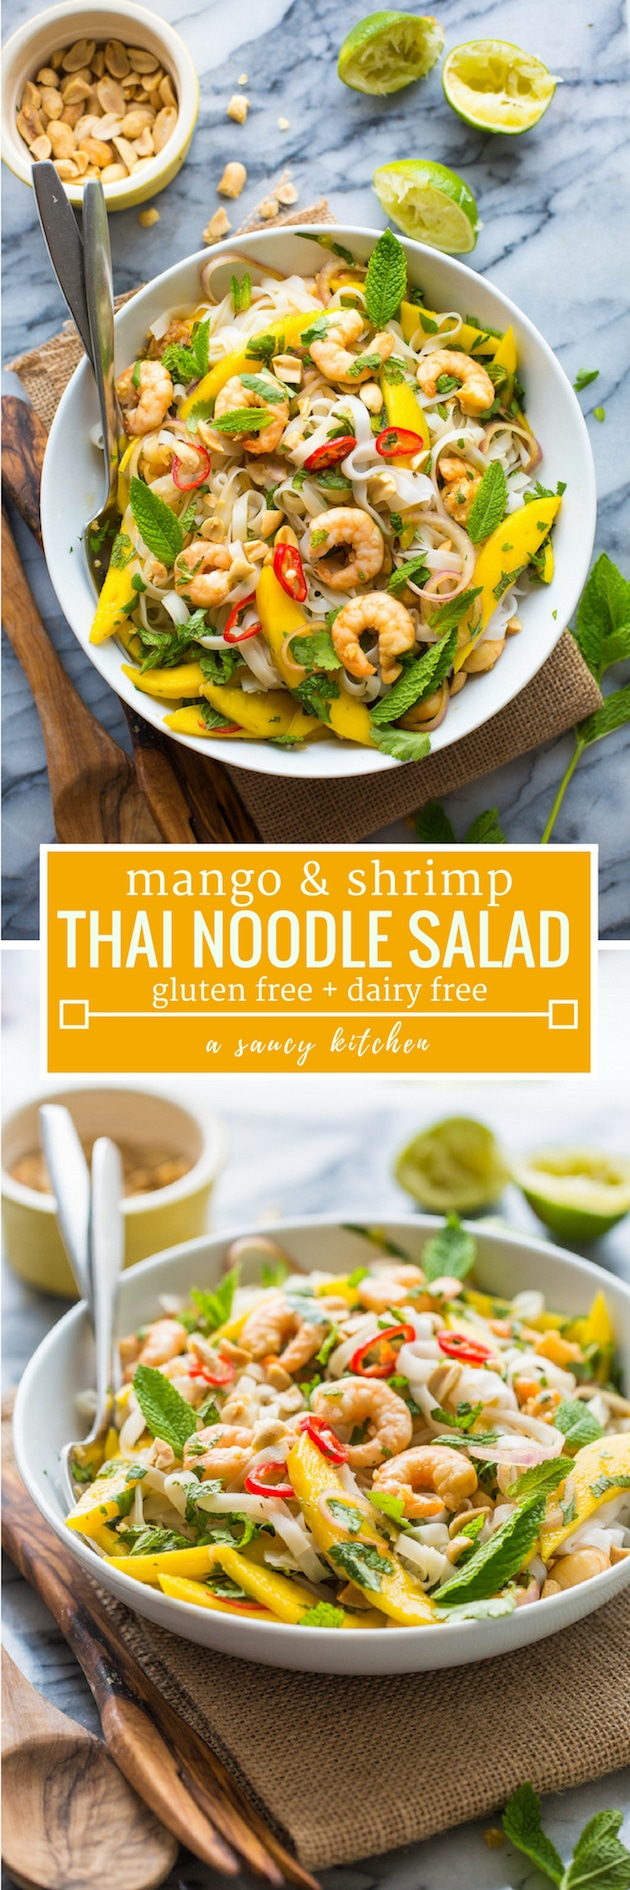 Fresh and flavourfulMango & Shrimp Thai Noodle Salad - bold & punchy flavours mixed together in a rice noodle salad with fresh herbs - easy to make and ready in under 20 minutes! #GlutenFree + #DairyFree #ricenoodles #mango #summersalad #shrimpsalad #healthyrecipe #shrimp